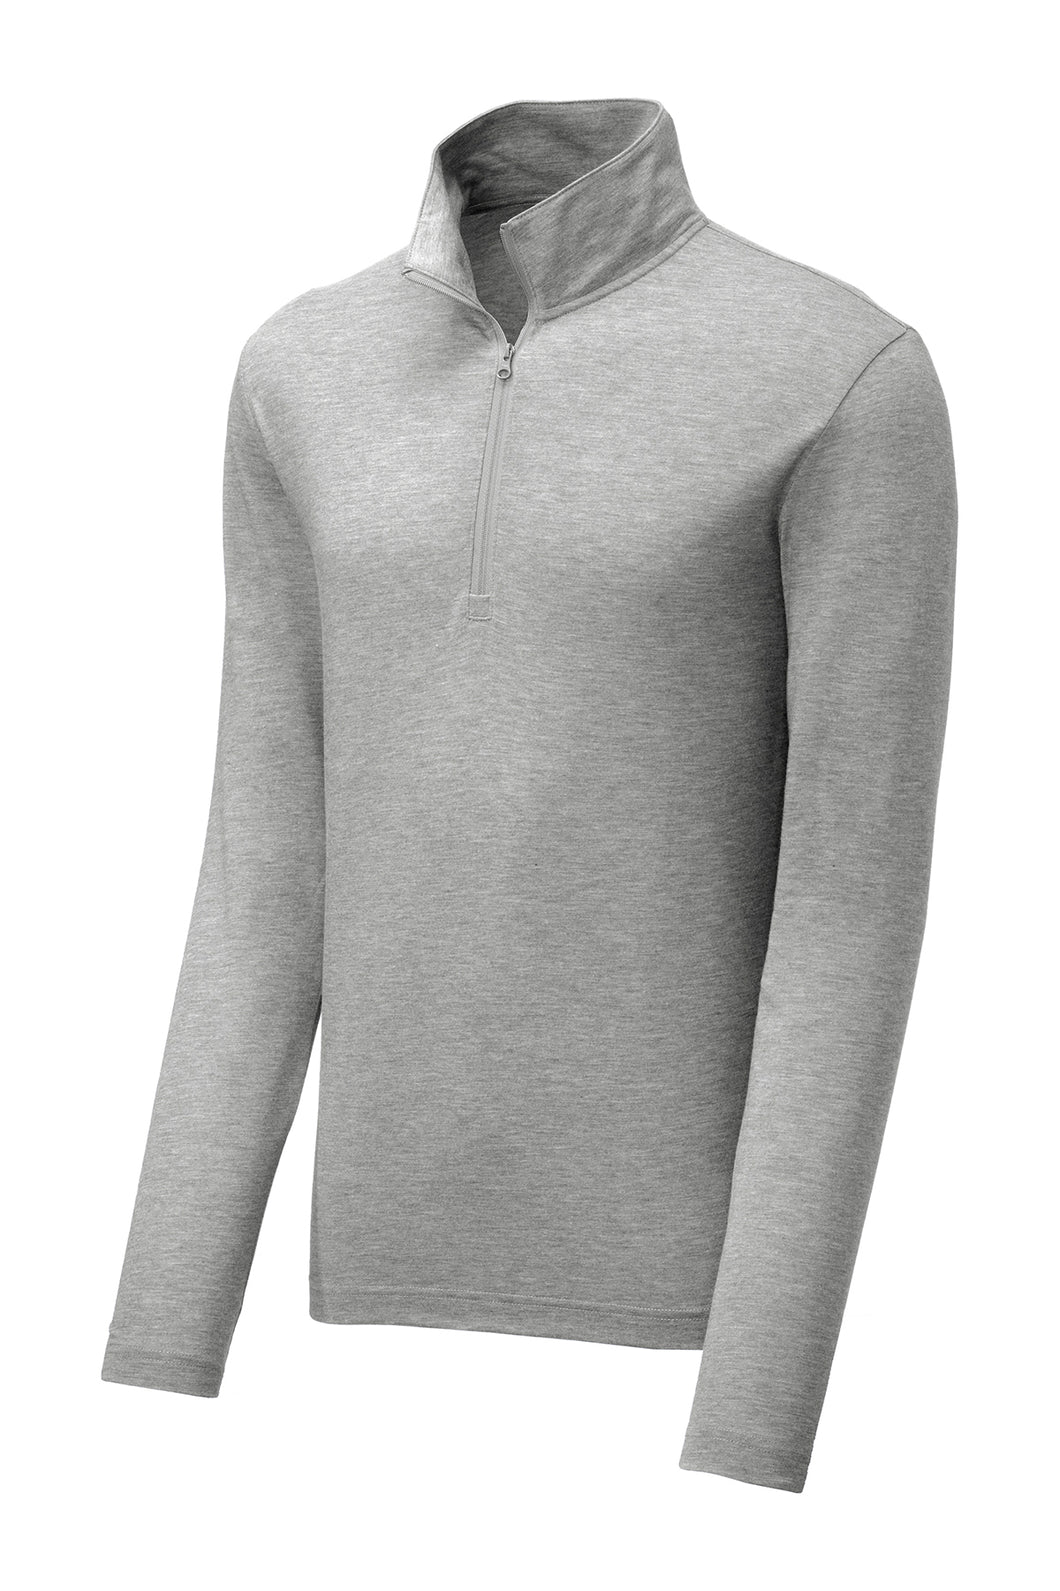 Fusion Performance Quarter-Zip - Grey